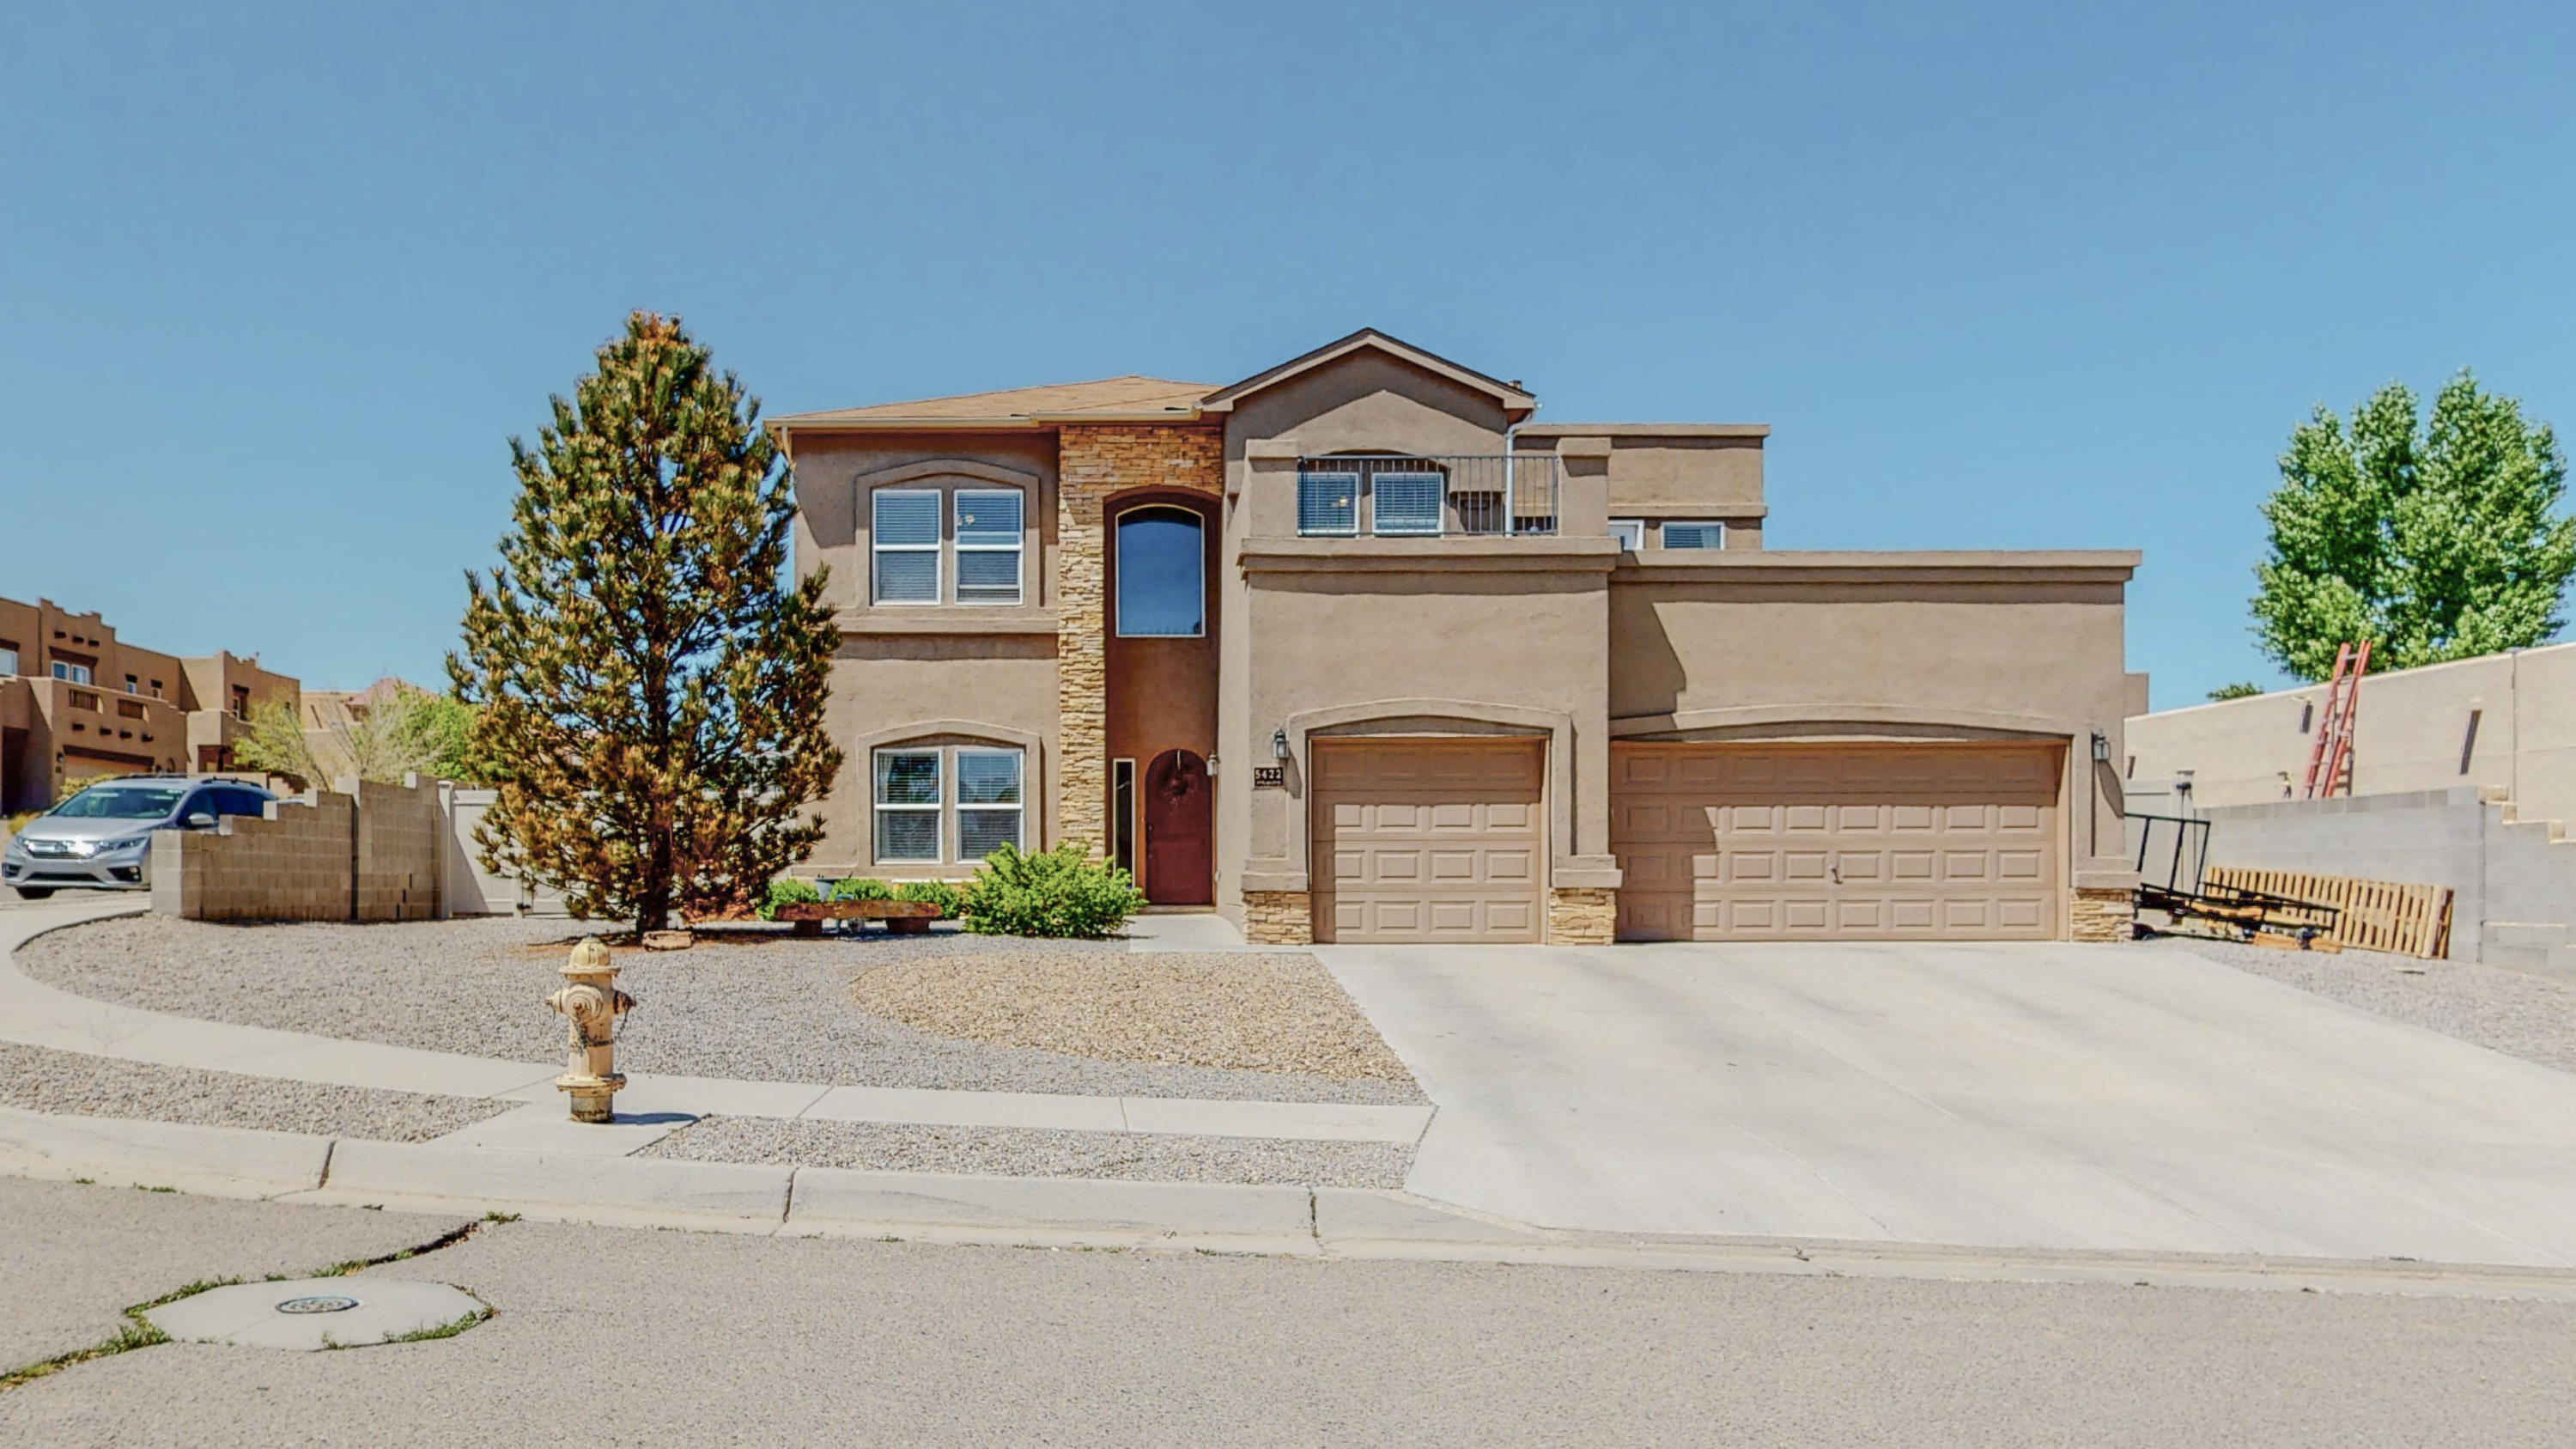 OPEN HOUSE Saturday, May 15 11-1. Take a look at this beautiful, spacious 2-story home with a pool located on a corner lot in the Enchanted Hills neighborhood of Rio Rancho. The floorplan features 5 bedrooms, 3 bathrooms & 3500 square feet of living space. The first floor features an open concept kitchen/dining/living area, an office, one bedroom & a full bath. Upstairs you'll find 4 bedrooms, 2 full baths, & a huge loft space perfect for a game room. The master bedroom offers a balcony, large bathroom & an oversized walk-in closet. The private backyard boasts an in-ground, heated gunite pool as well as a concrete pad, & backyard access. Other features include a large pantry & 3-car garage. Located close to shopping & dining, this home offers amazing space & fabulous outdoor living.